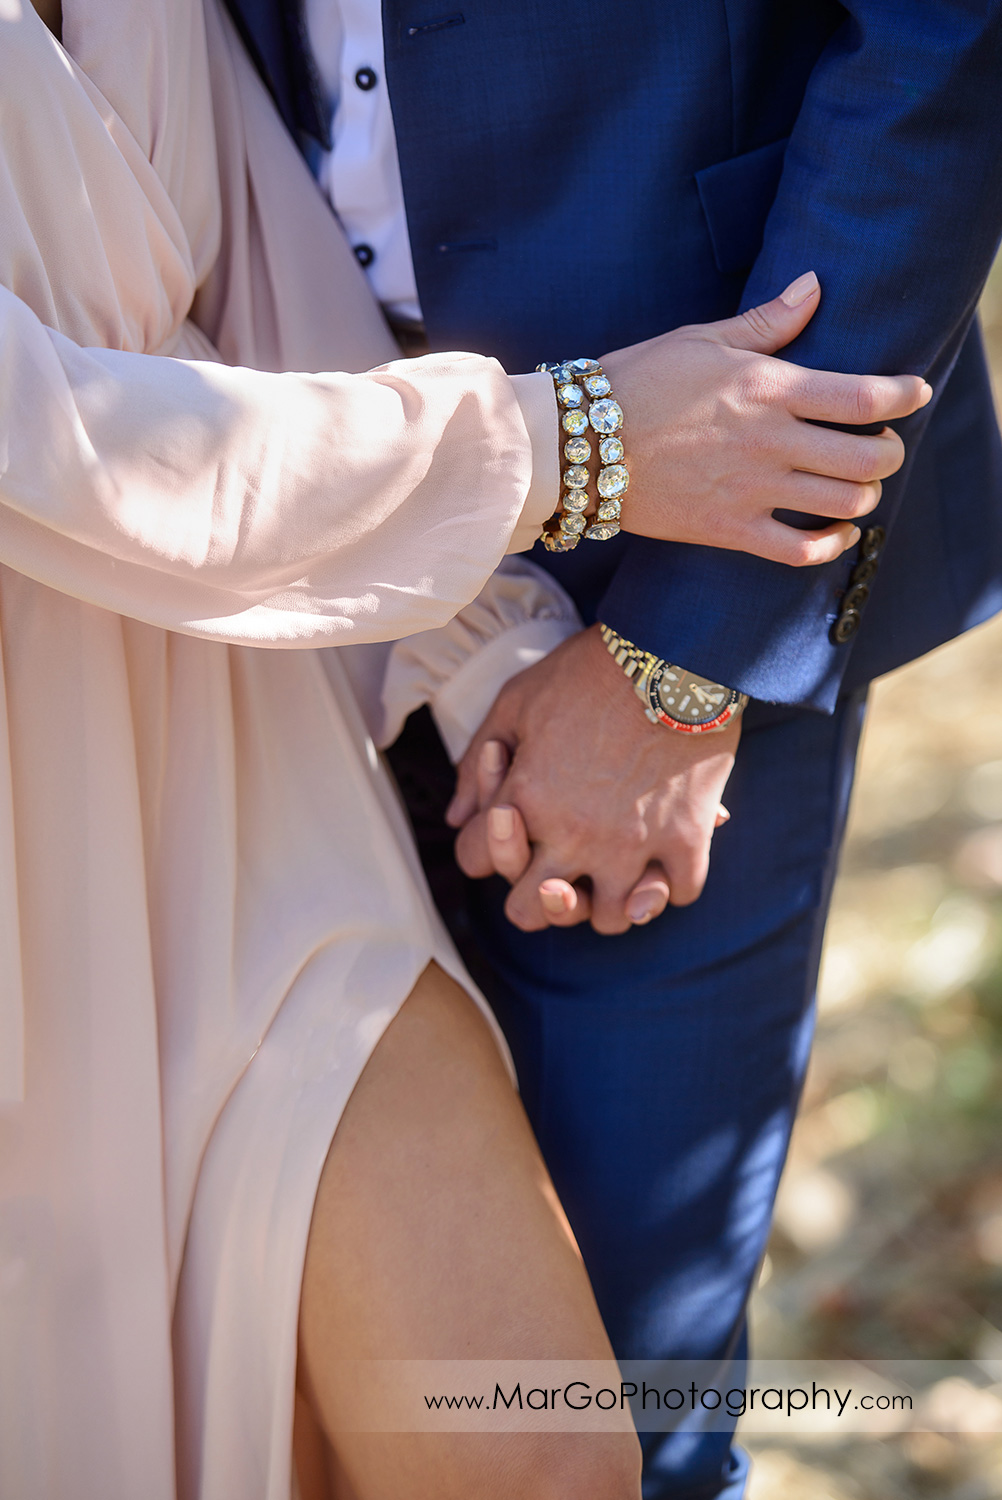 close-up of woman in pink dress and man in blue suit hands during Napa Valley engagement session at Castello di Amorosa in Calistoga